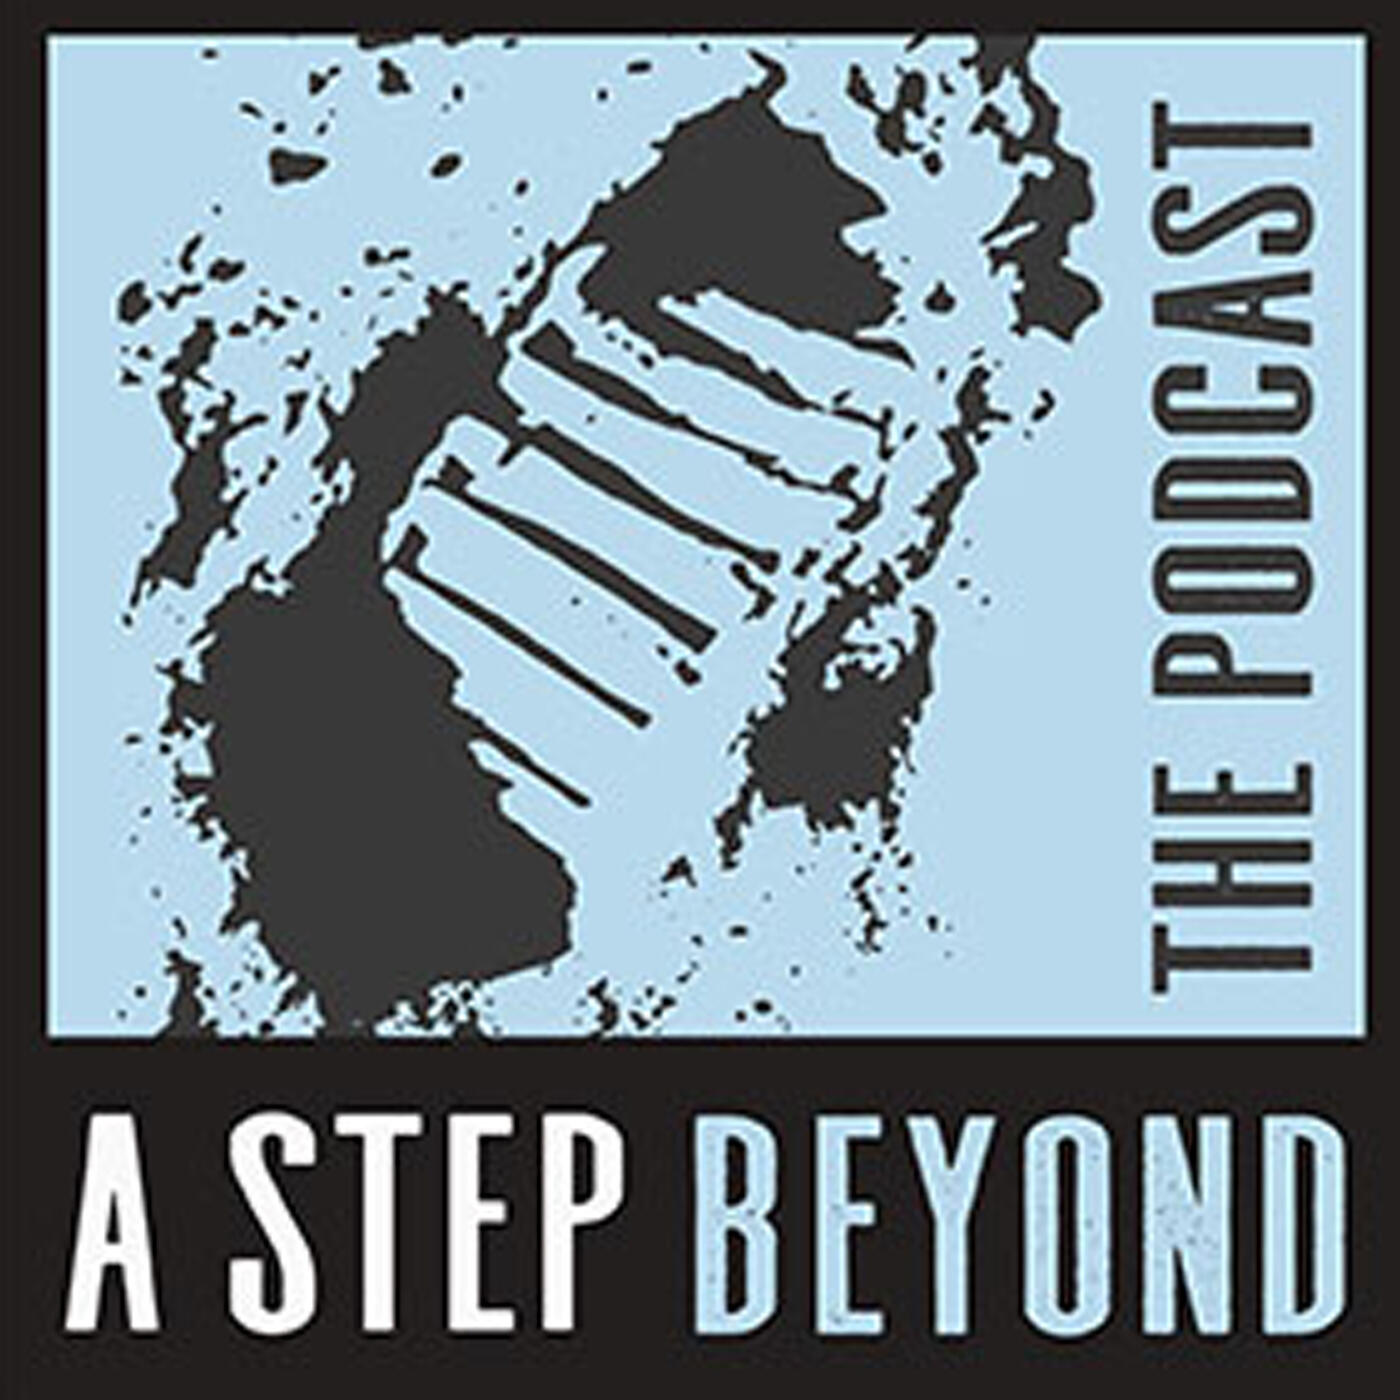 Listen to S4 EP4 Fred Haise: Apollo 13 Astronaut | A Step Beyond | Podcasts